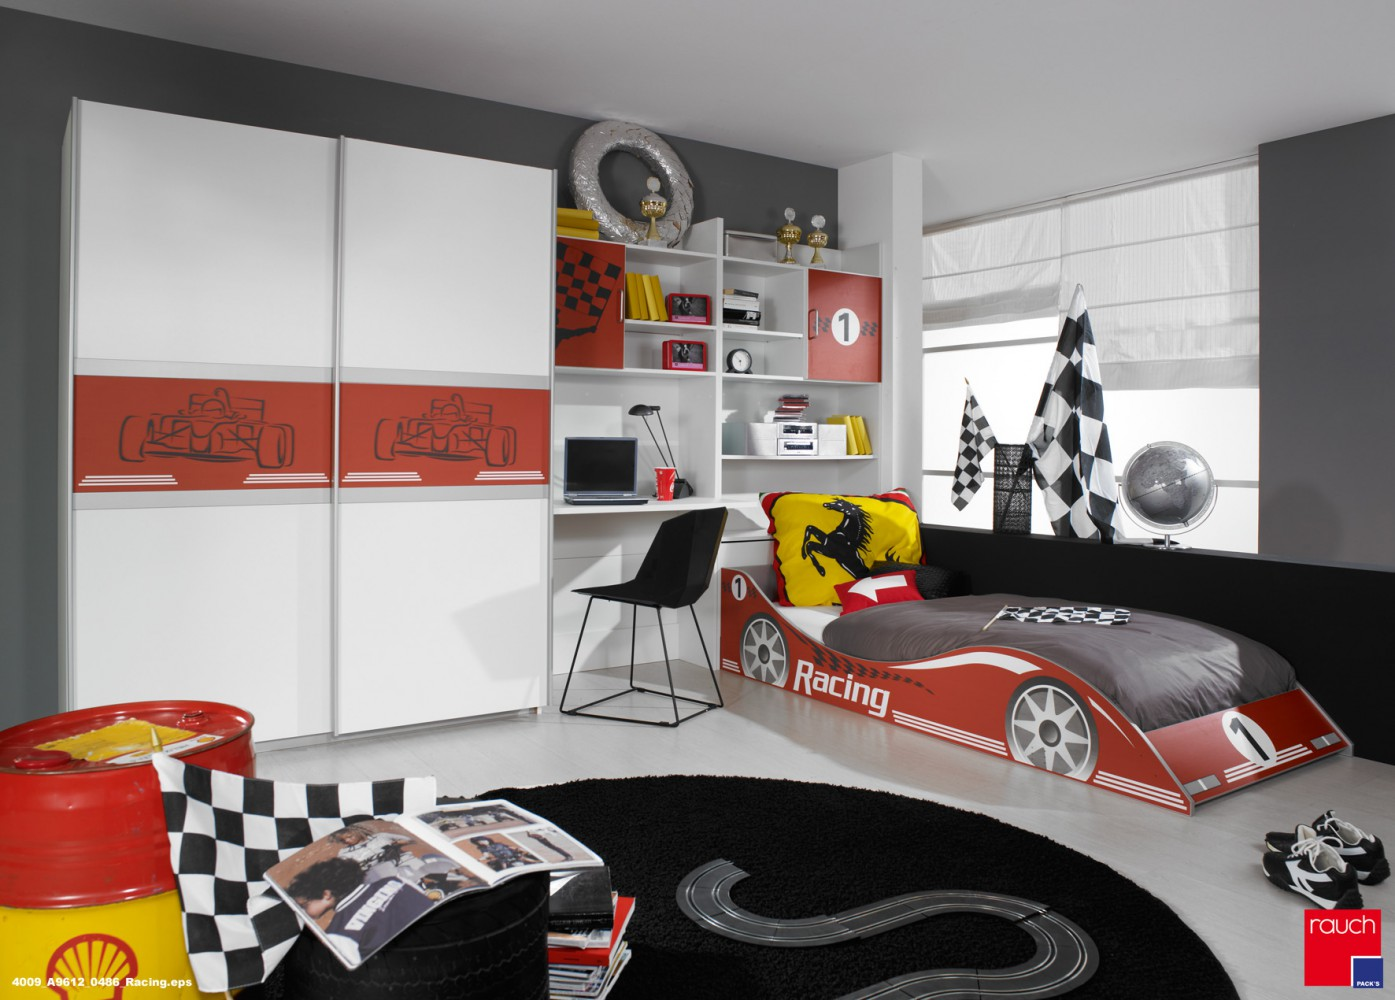 rauch jugendzimmer kinderzimmer autobett schrank. Black Bedroom Furniture Sets. Home Design Ideas